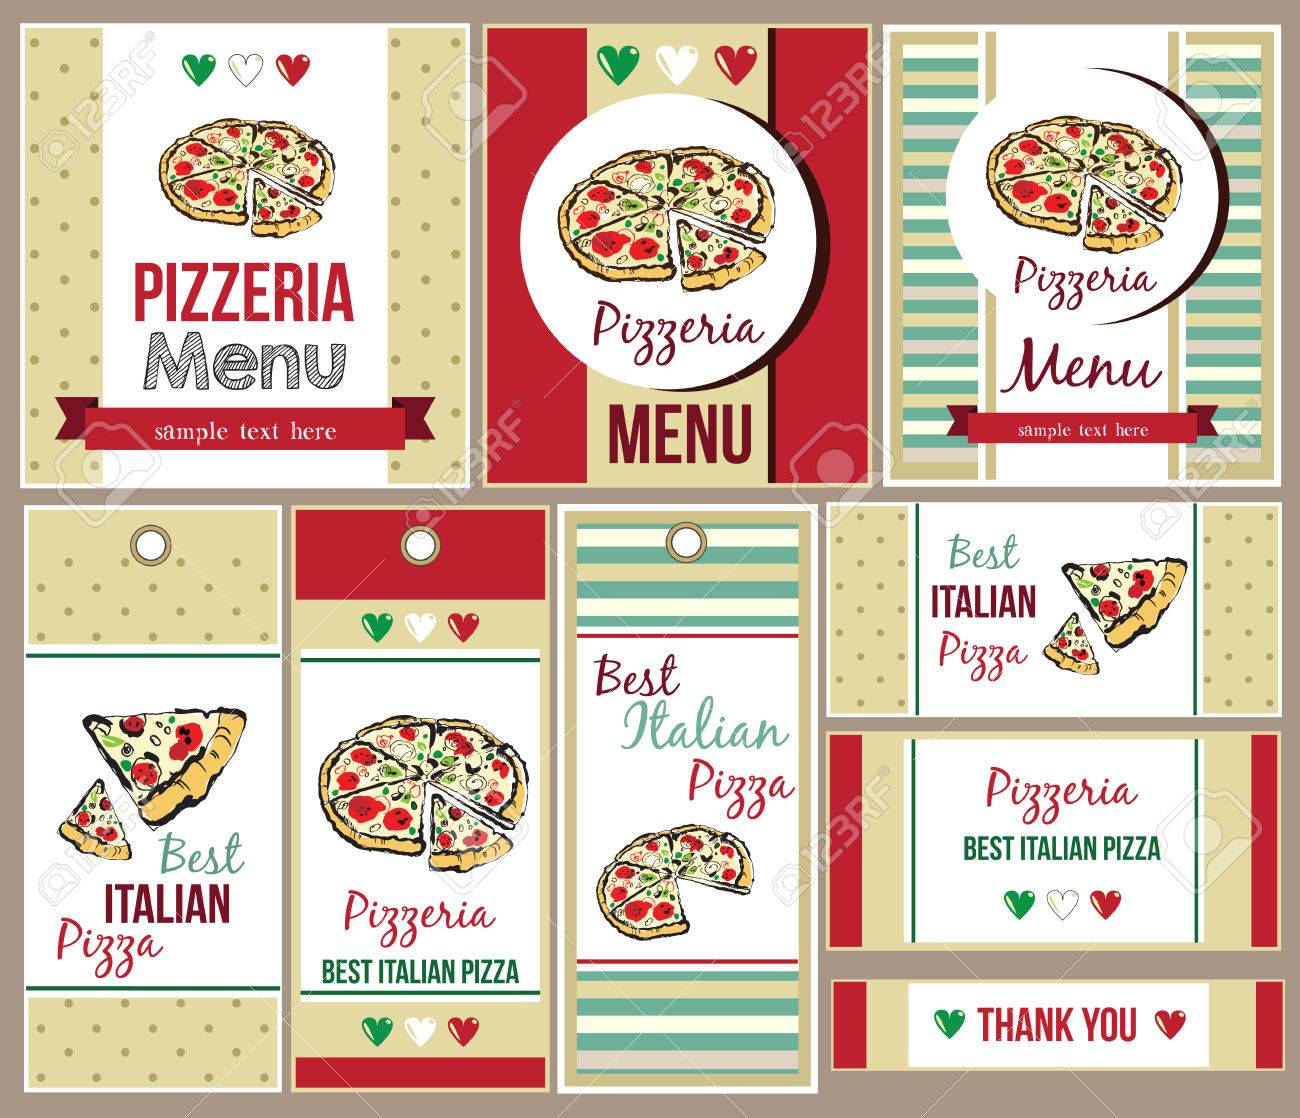 Template Of Menu For Pizza Restaurant And Business Card Stock Photo ...